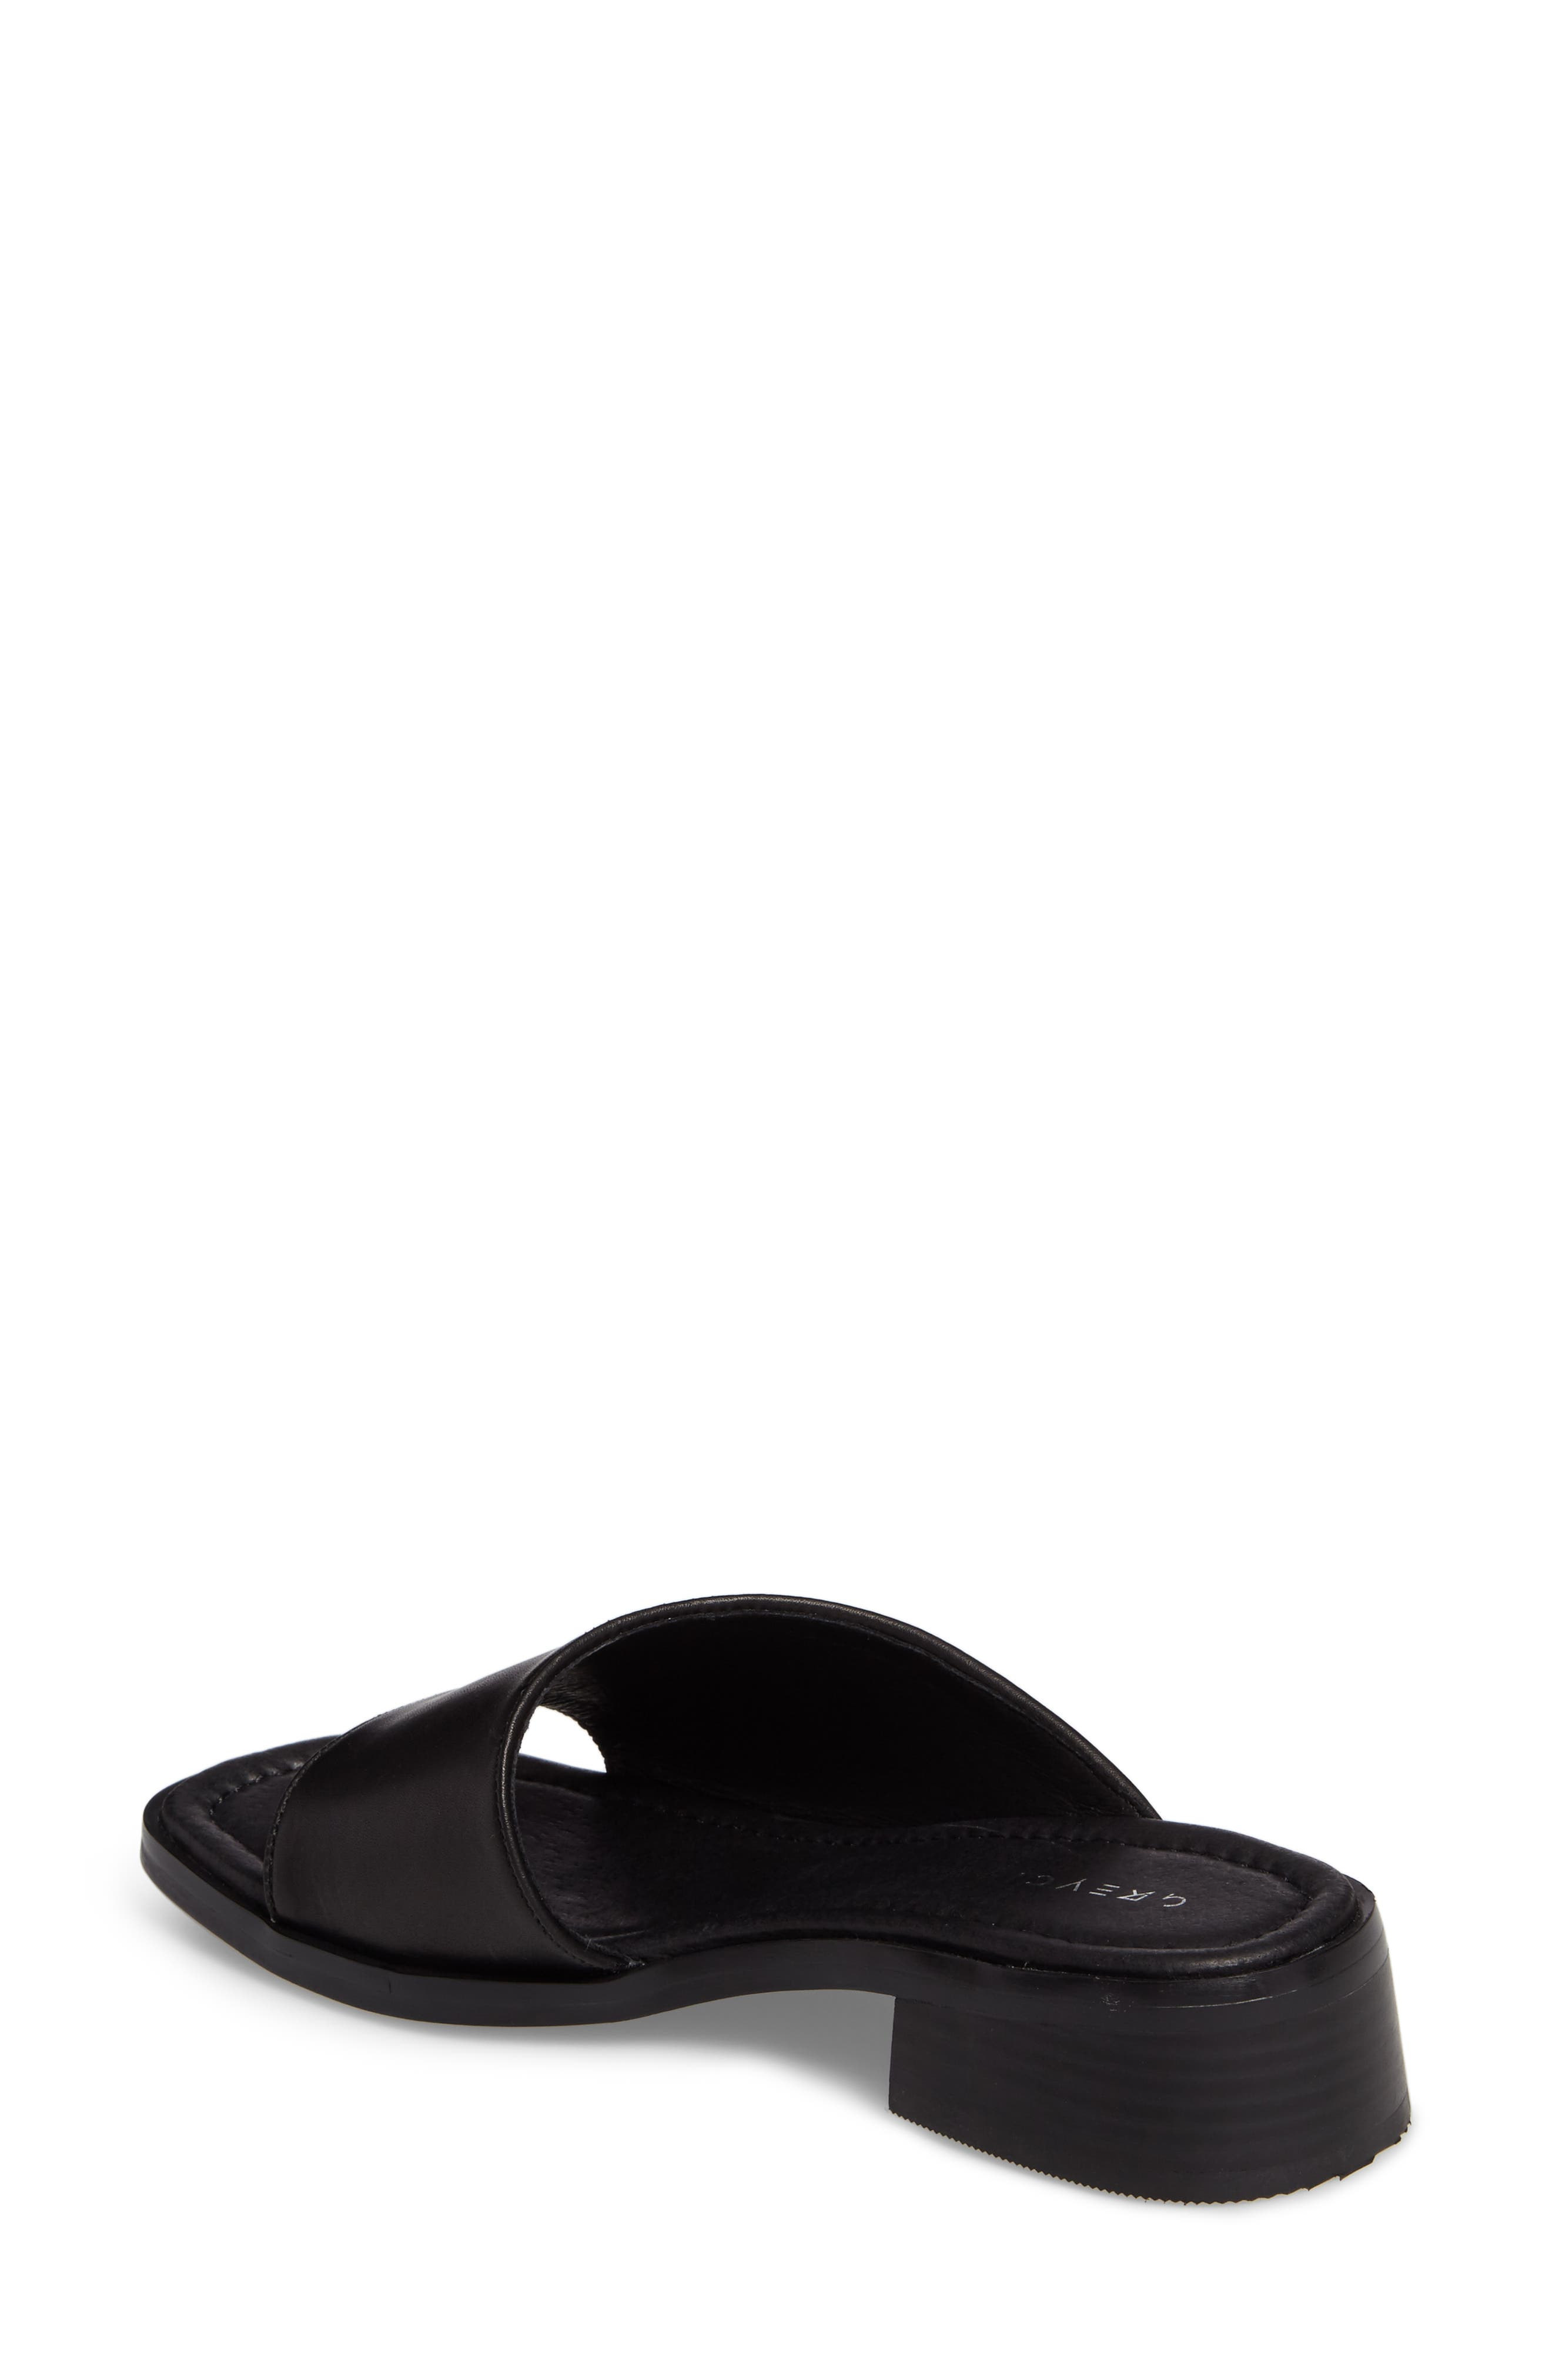 Paula Slide Sandal,                             Alternate thumbnail 2, color,                             Black